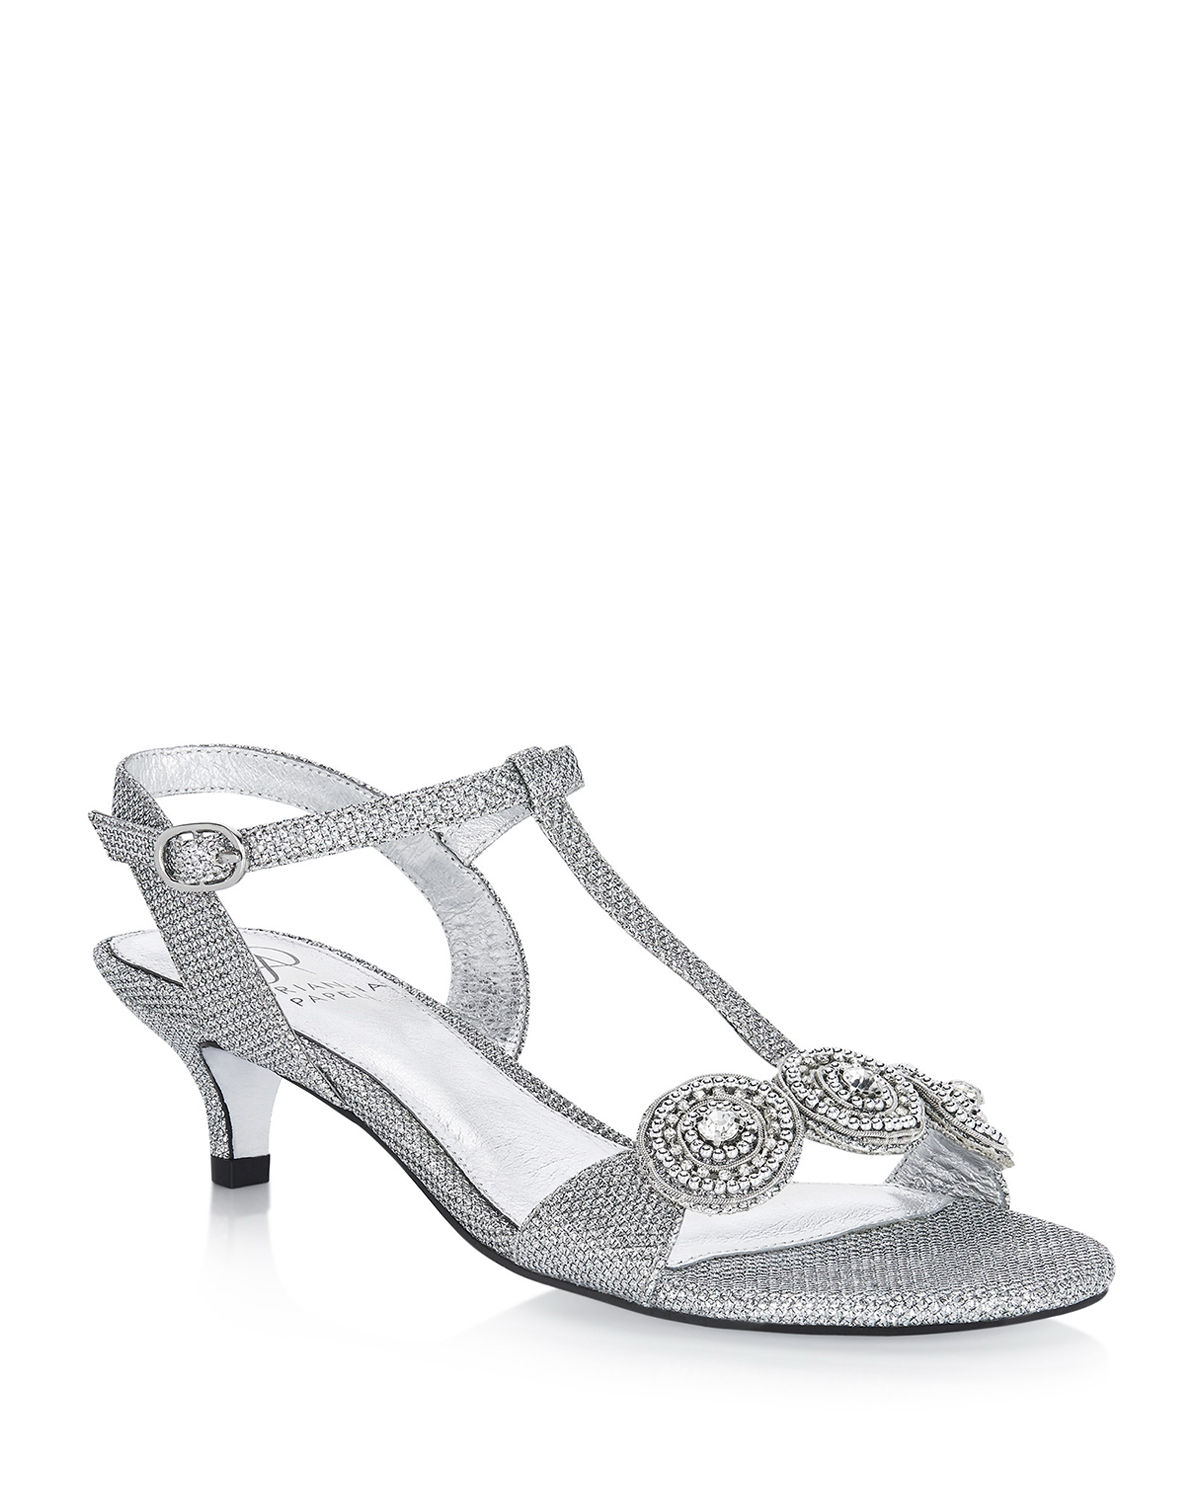 Adrianna Papell Sandals TACY METALLIC BEADED T-STRAP EVENING SANDALS